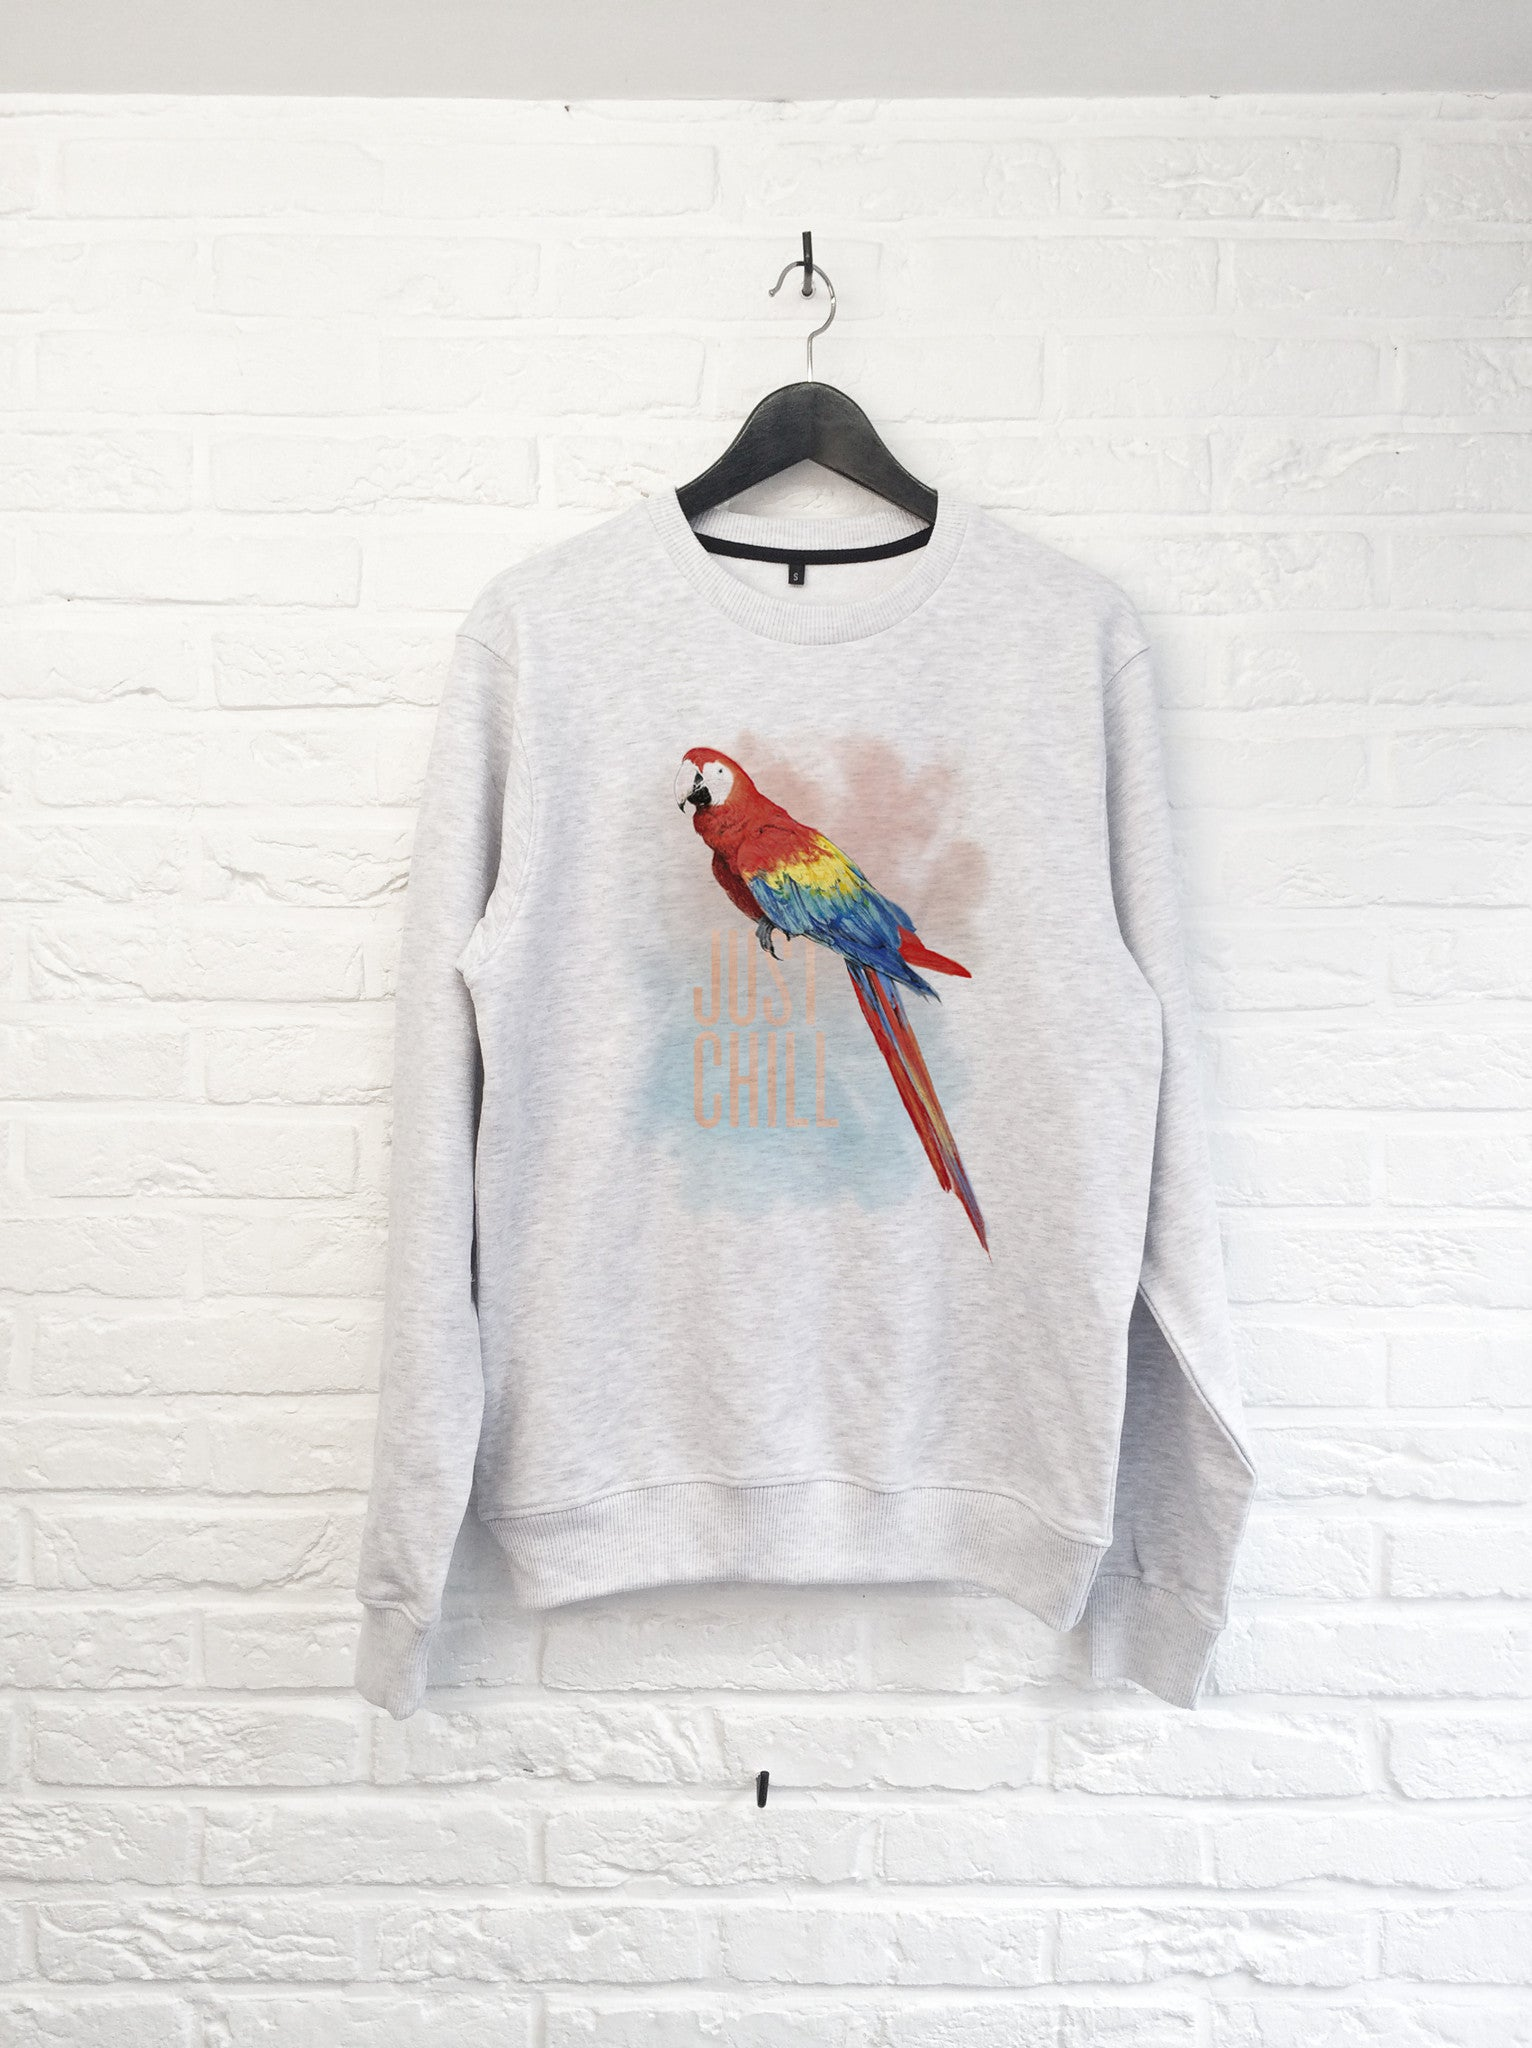 TH Gallery - Perroquet just chill - Sweat-Sweat shirts-Atelier Amelot